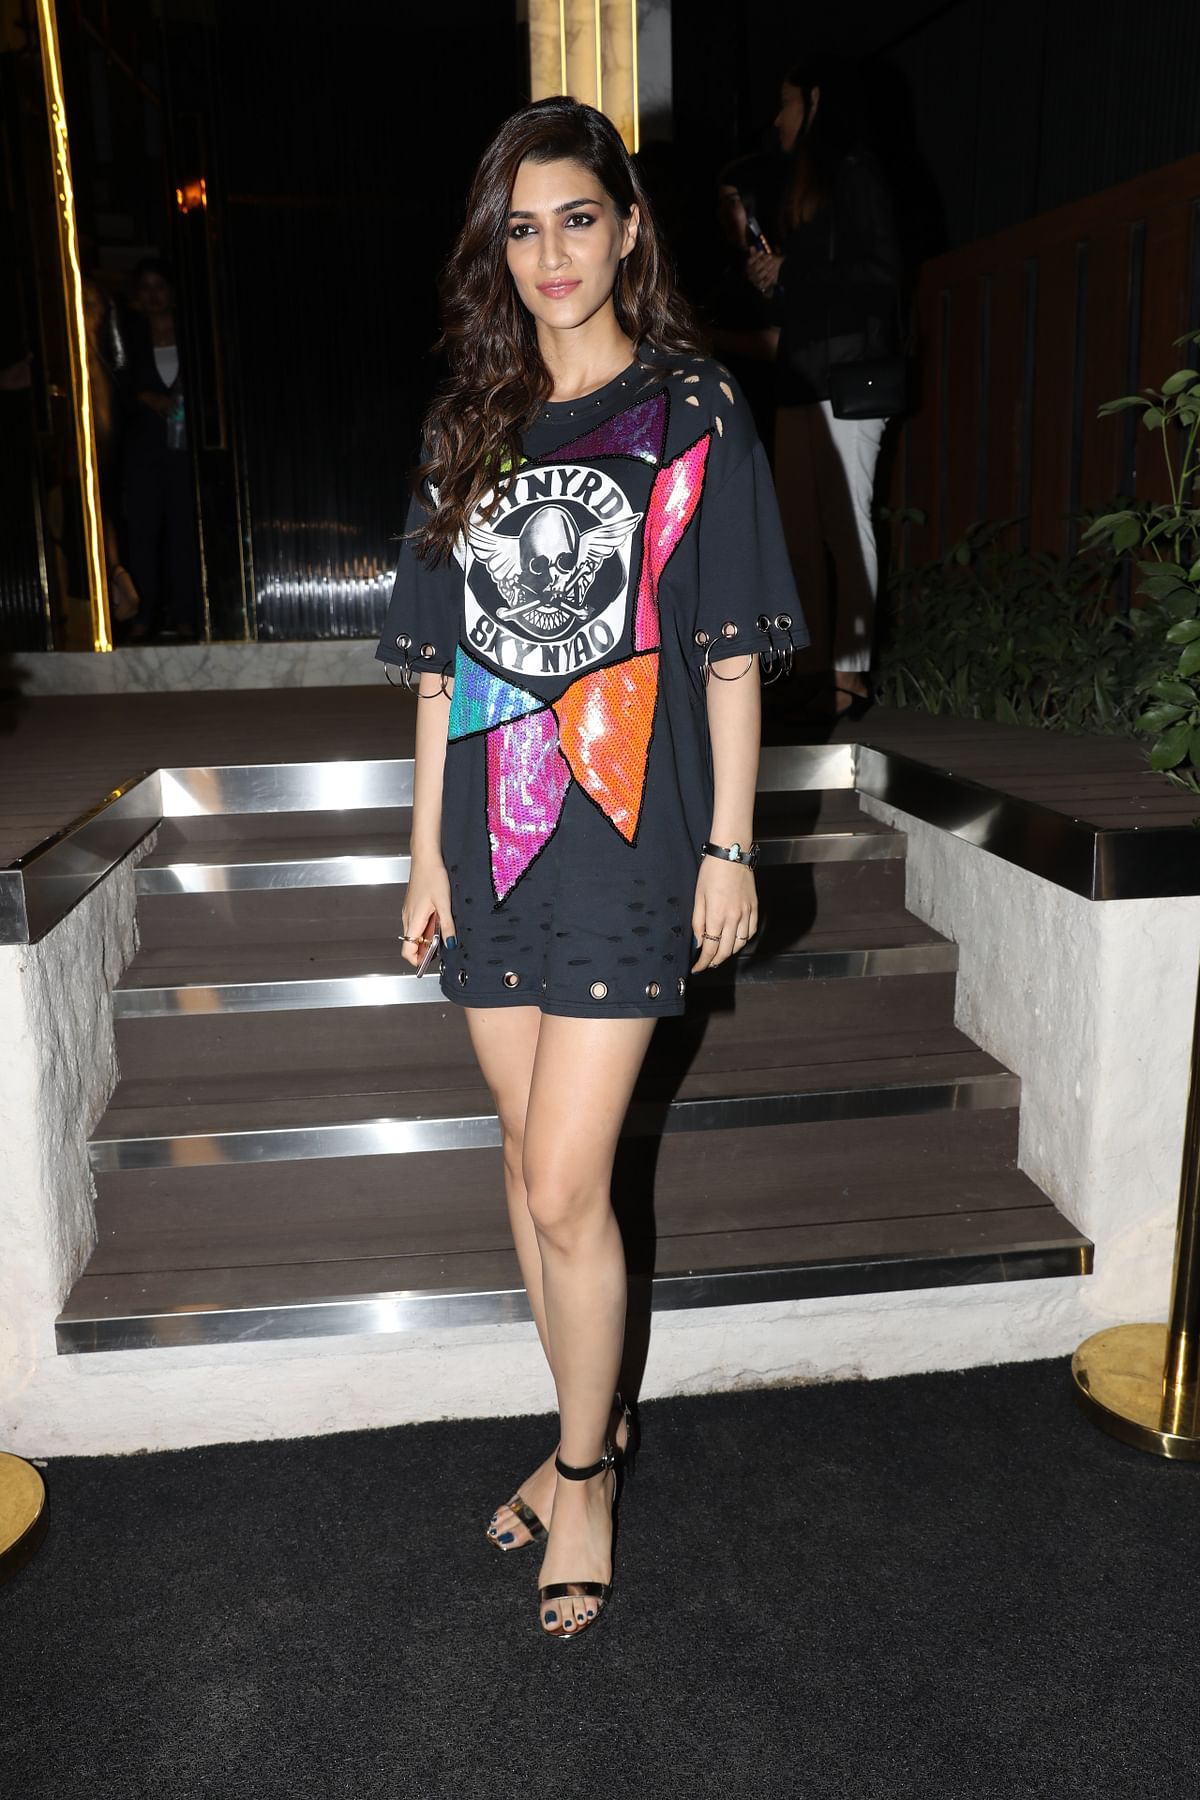 Kriti Sanon made an appearance at the event. (Photo: Yogen Shah)